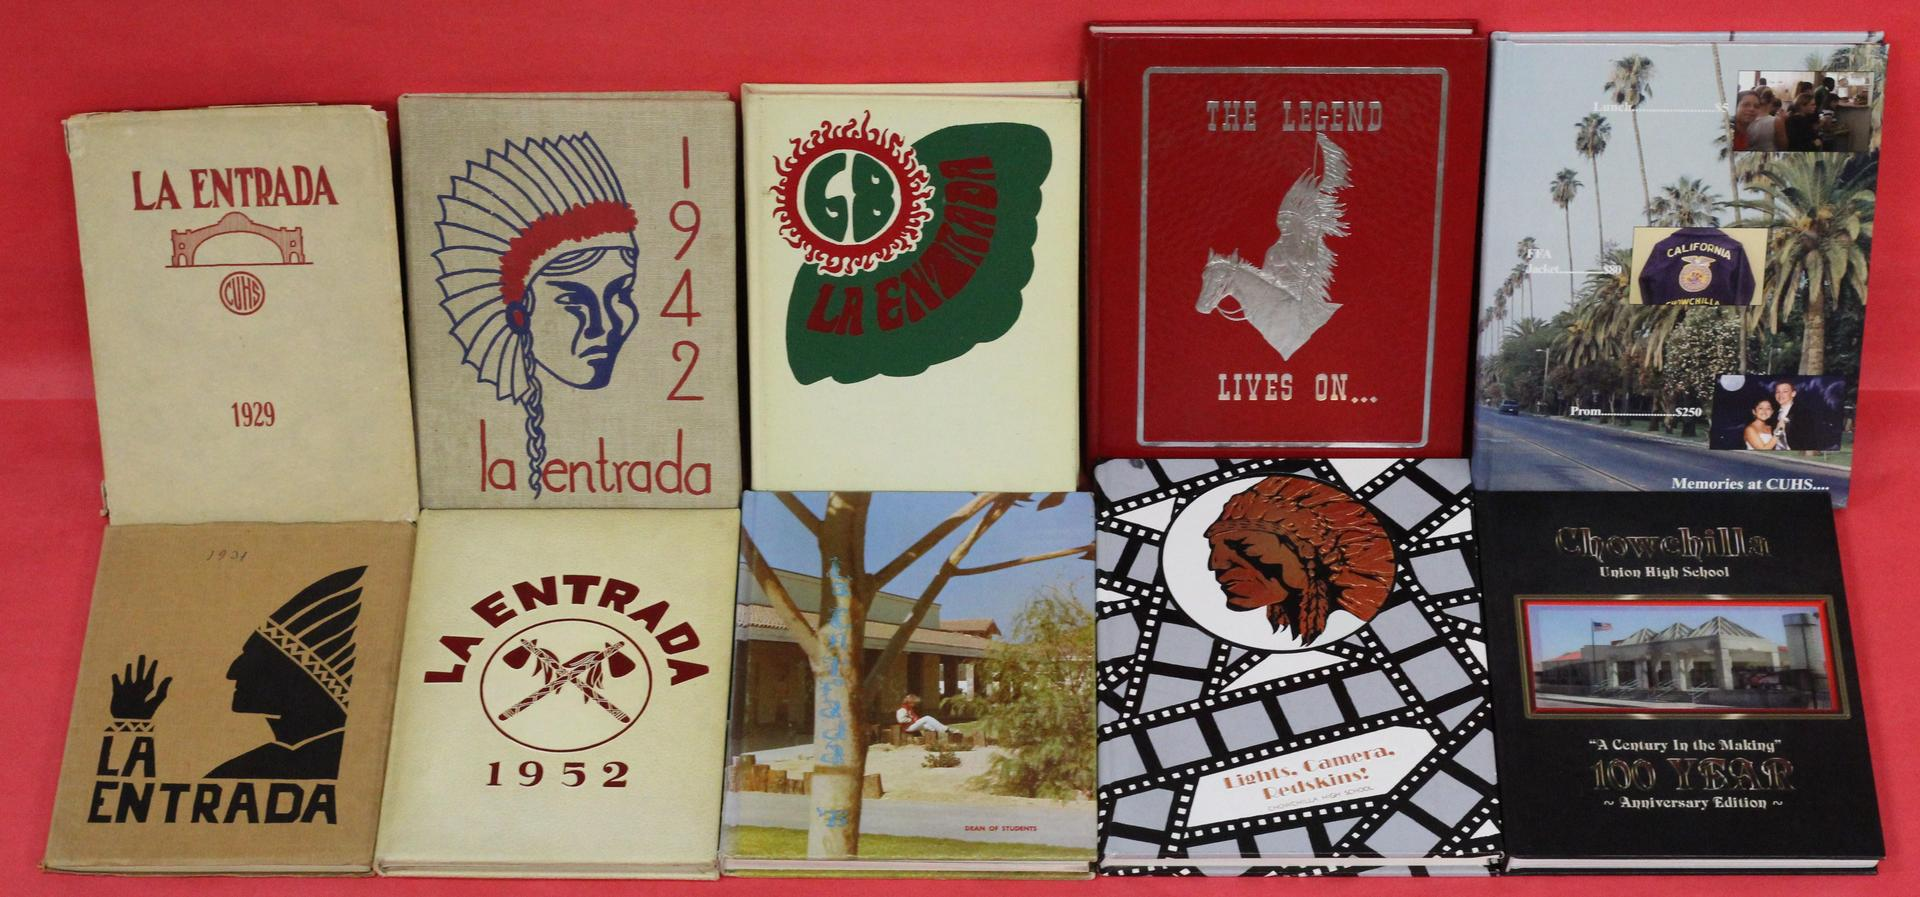 Covers of Yearbooks from 1829, 1931,1942, 1952, 1968, 1978, 1988, 1996, 2003, and 2017 displayed.